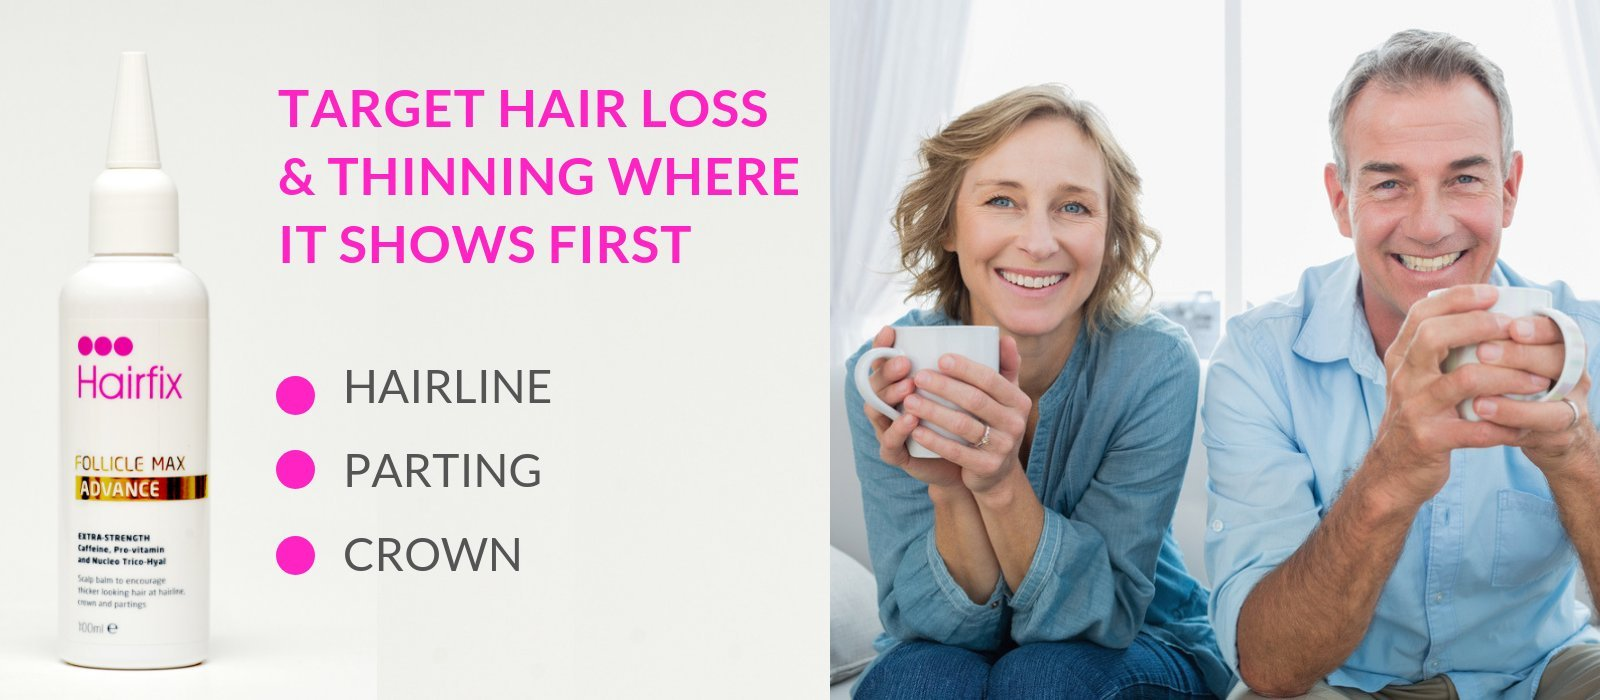 Hairfix for hair loss & thinning